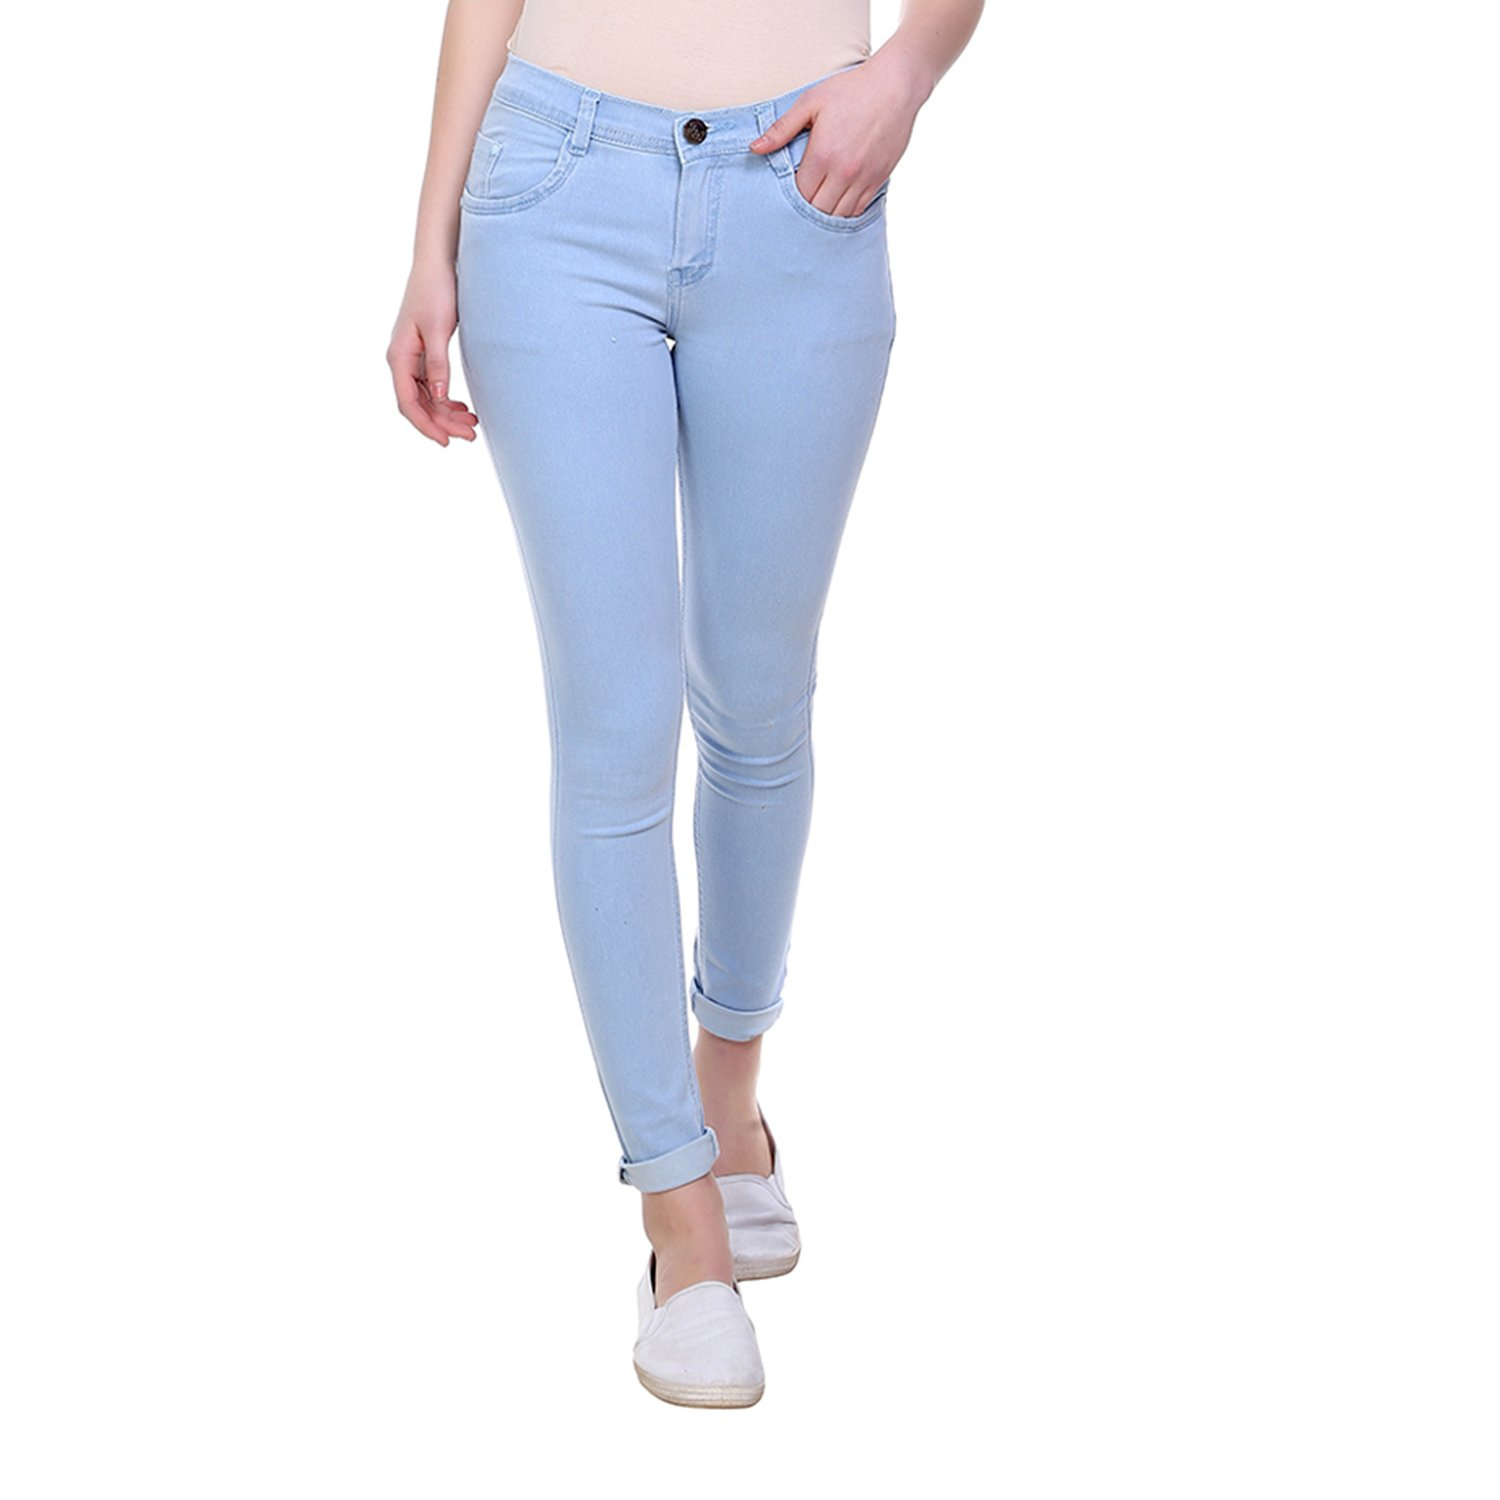 VANGULL Women's Cotton Skinny Fit Jeans